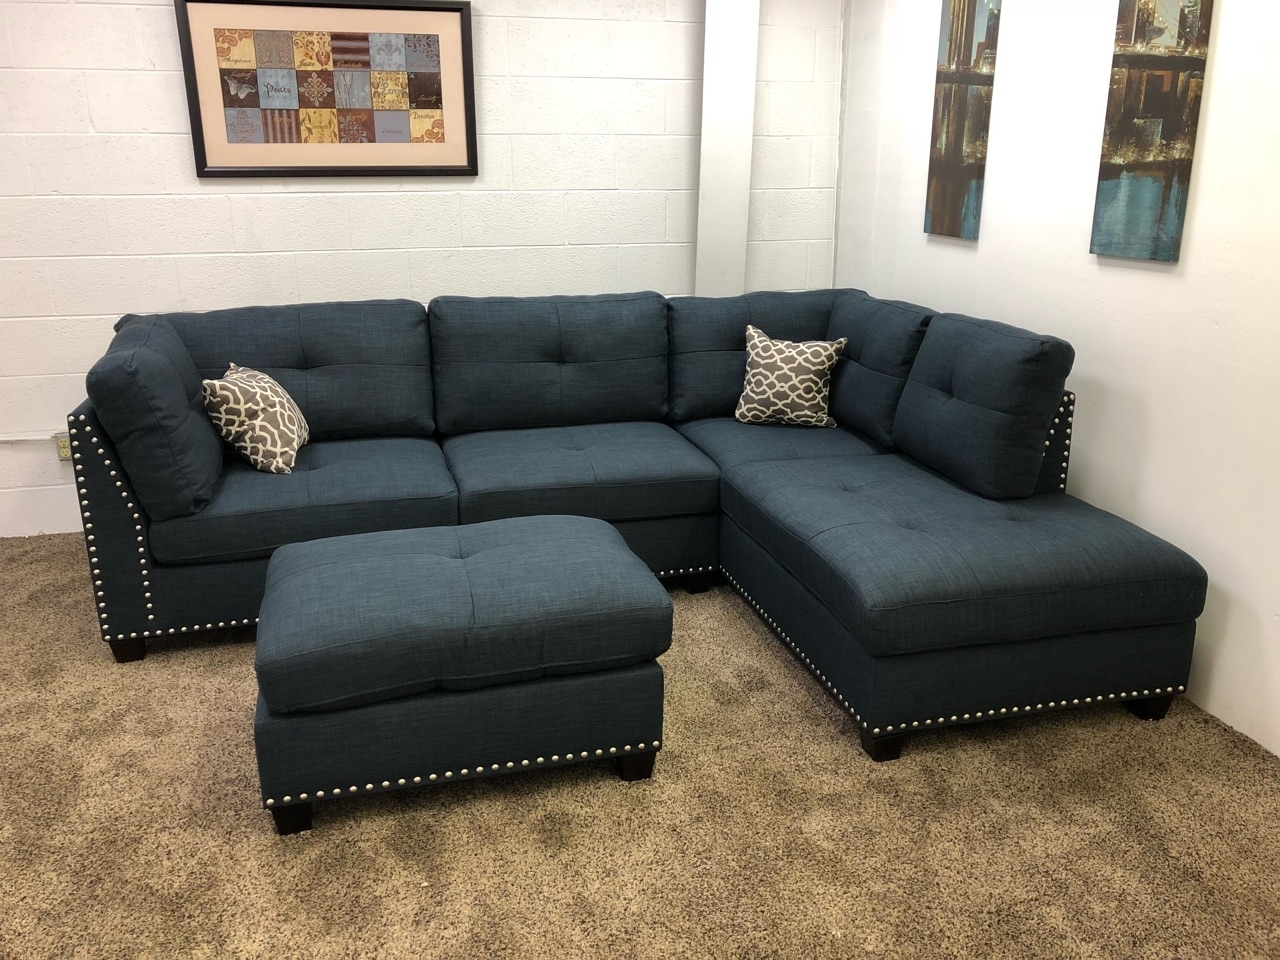 0 In Stock)#n754R $250 Down Blue Studded Linen Sectional Sofa W For Sectional Sofas With Chaise Lounge And Ottoman (View 1 of 15)